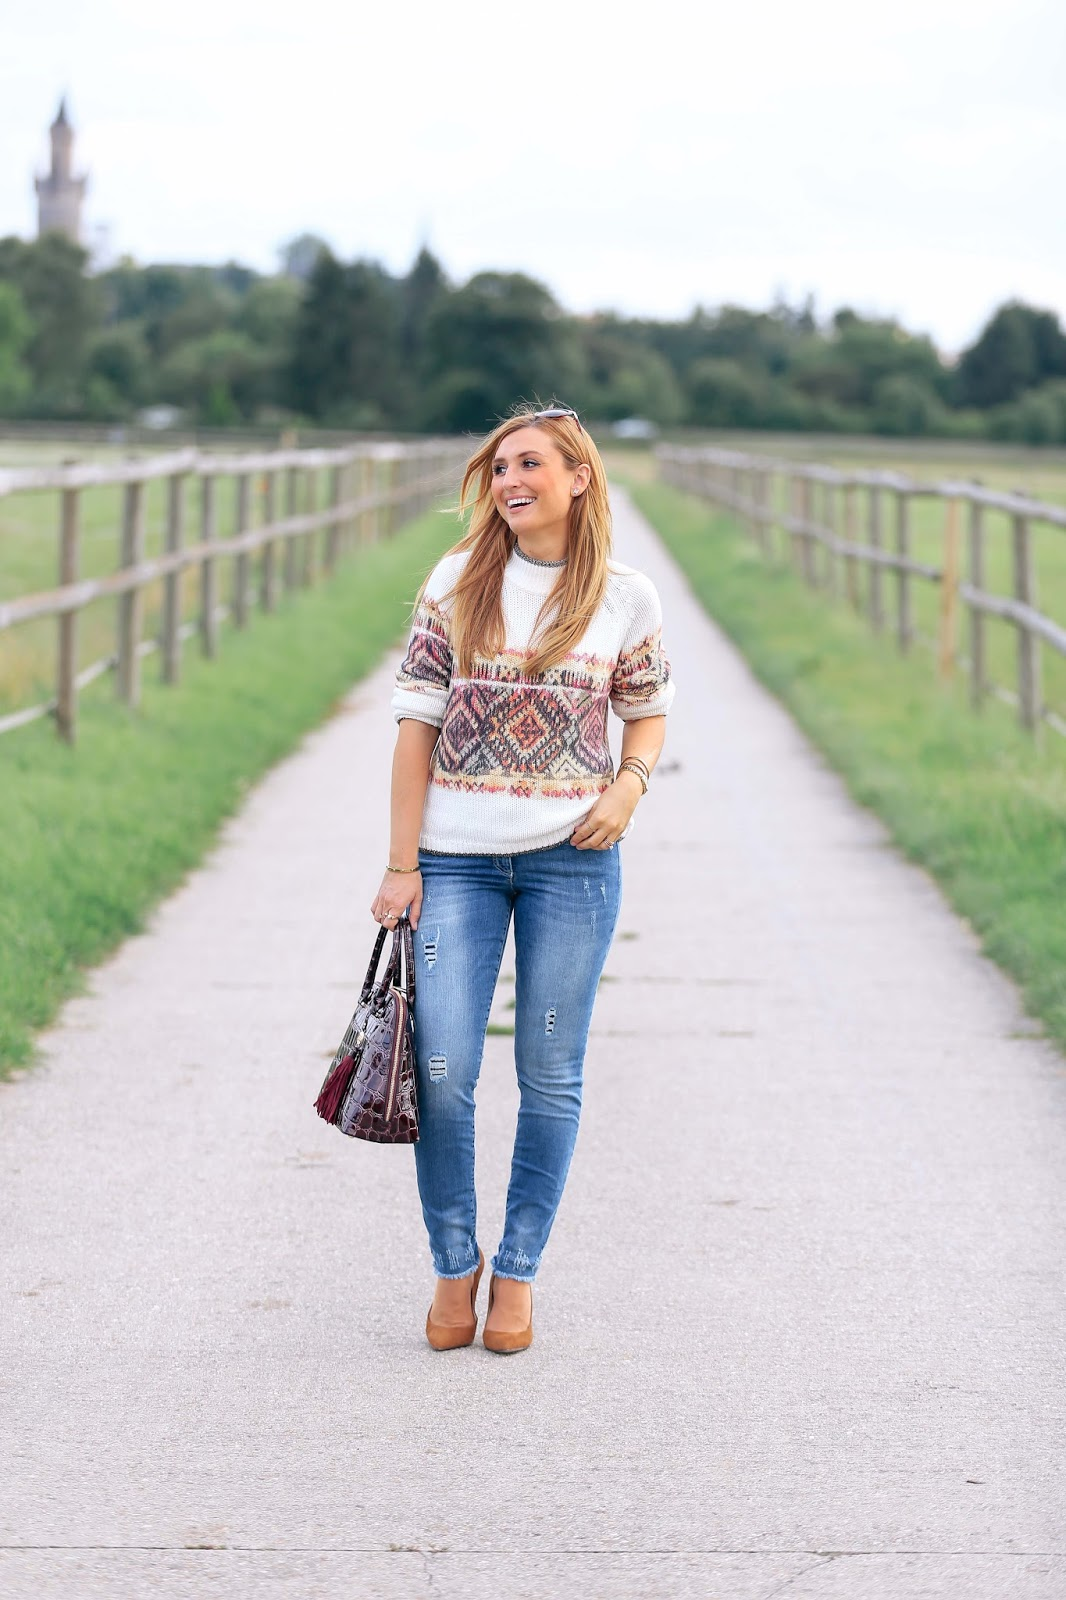 texas-look-herbst-outfit-autumn-look-fashionblogger-fashionstylebyjohanna-blogger-style-guess-high-heels-roland-schuhe